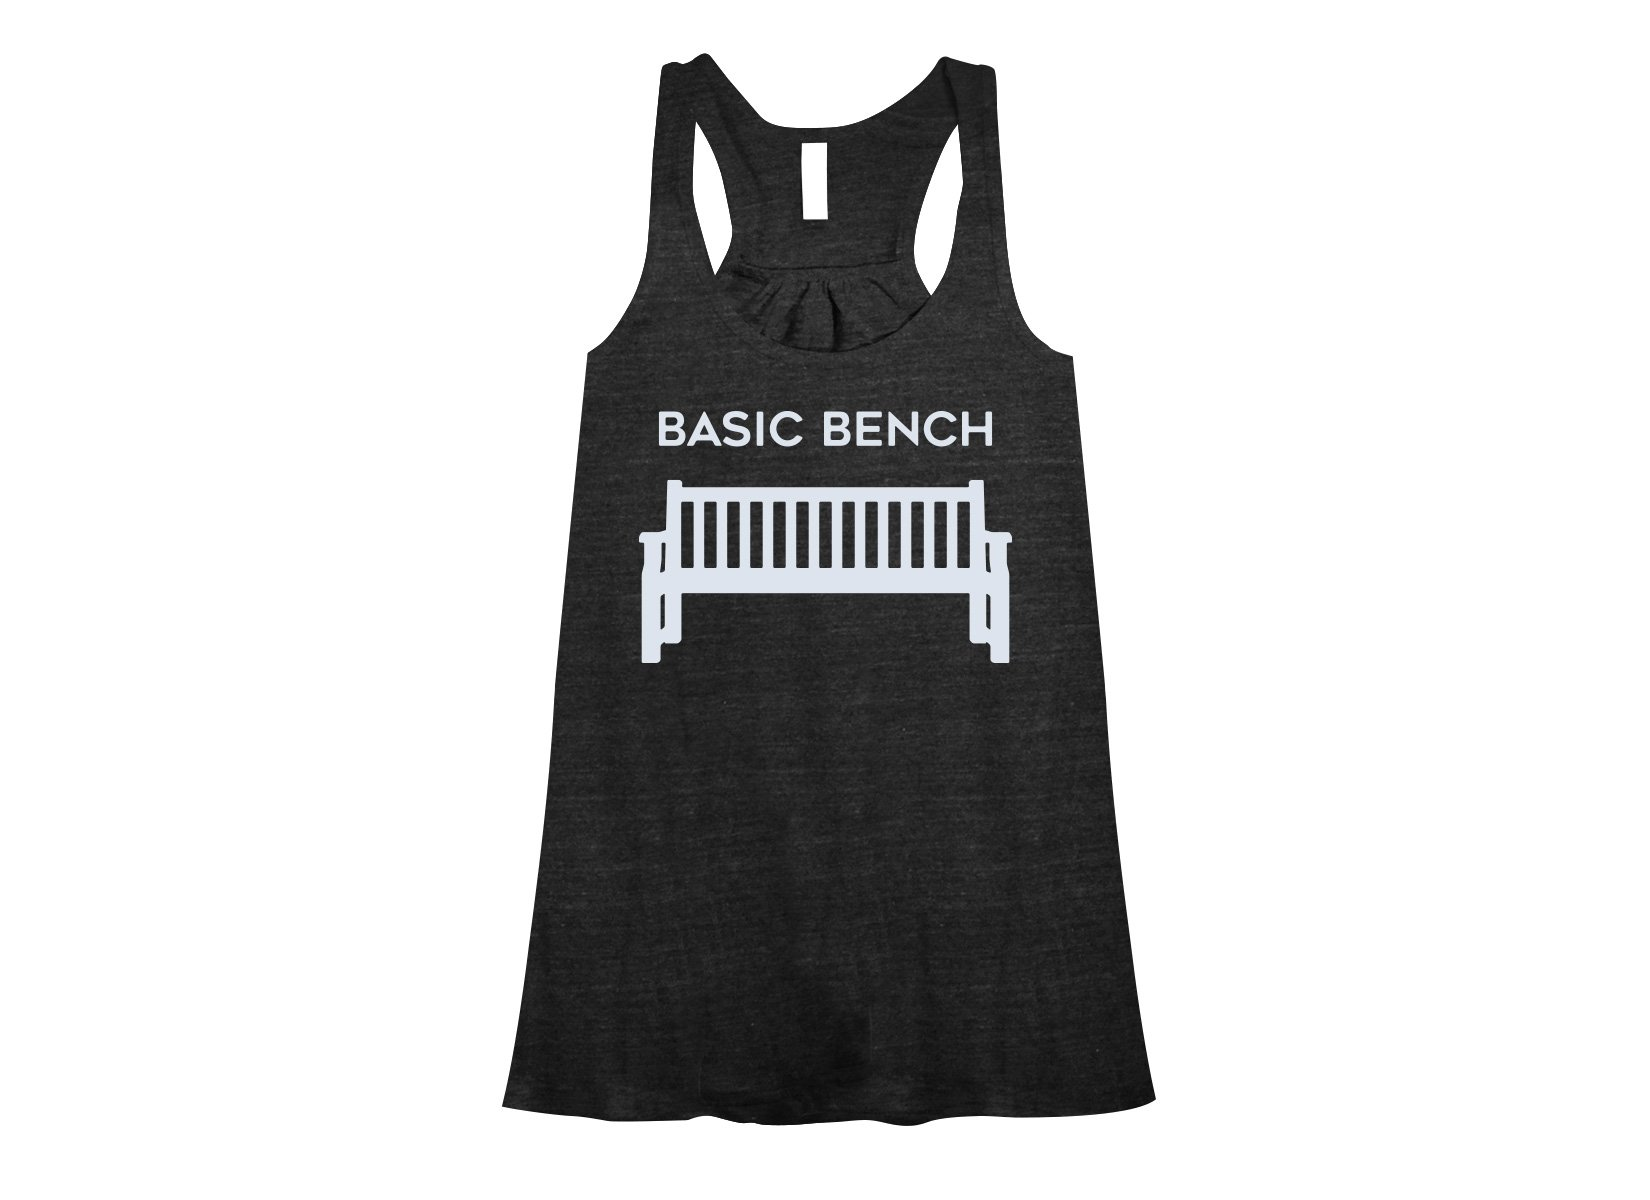 Basic Bench on Womens Tanks T-Shirt